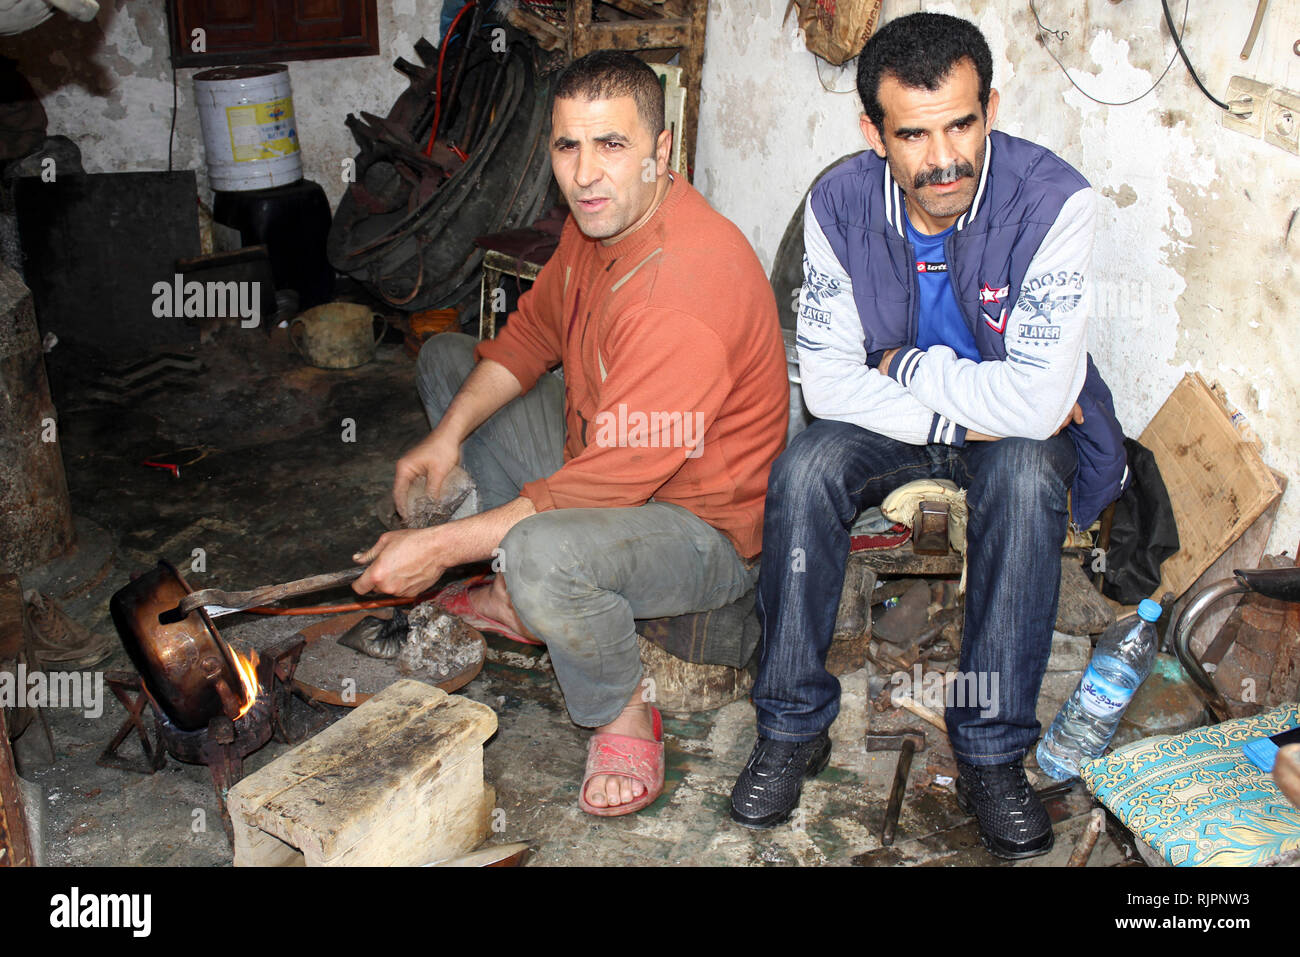 Metalworkers in their workshop at the Place el Seffarine, Medina of Fes el Bali, Fez, Morocco - Stock Image